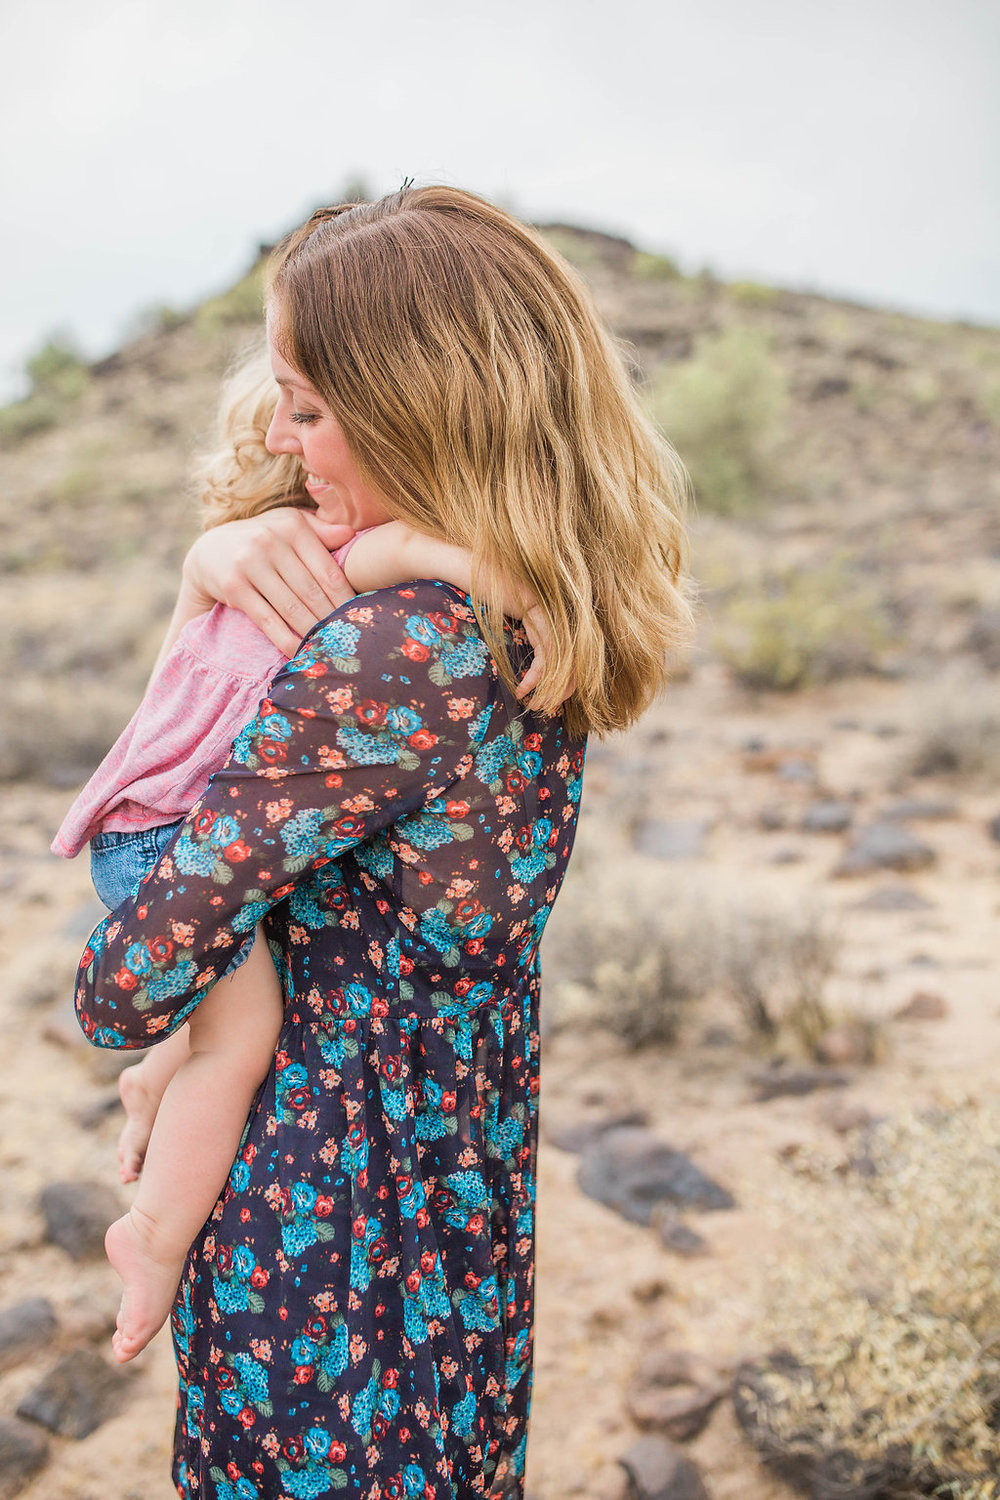 Desert Family Photo Shoot in Arizona | Emma Rose Company | Portrait Photographer | Seattle Wedding Photographer | Adorable Family Photo Shoot Outside | Family Posing | Cute Kids with Dad | Family Photo Shoot | Mother Daughter Family Pictures